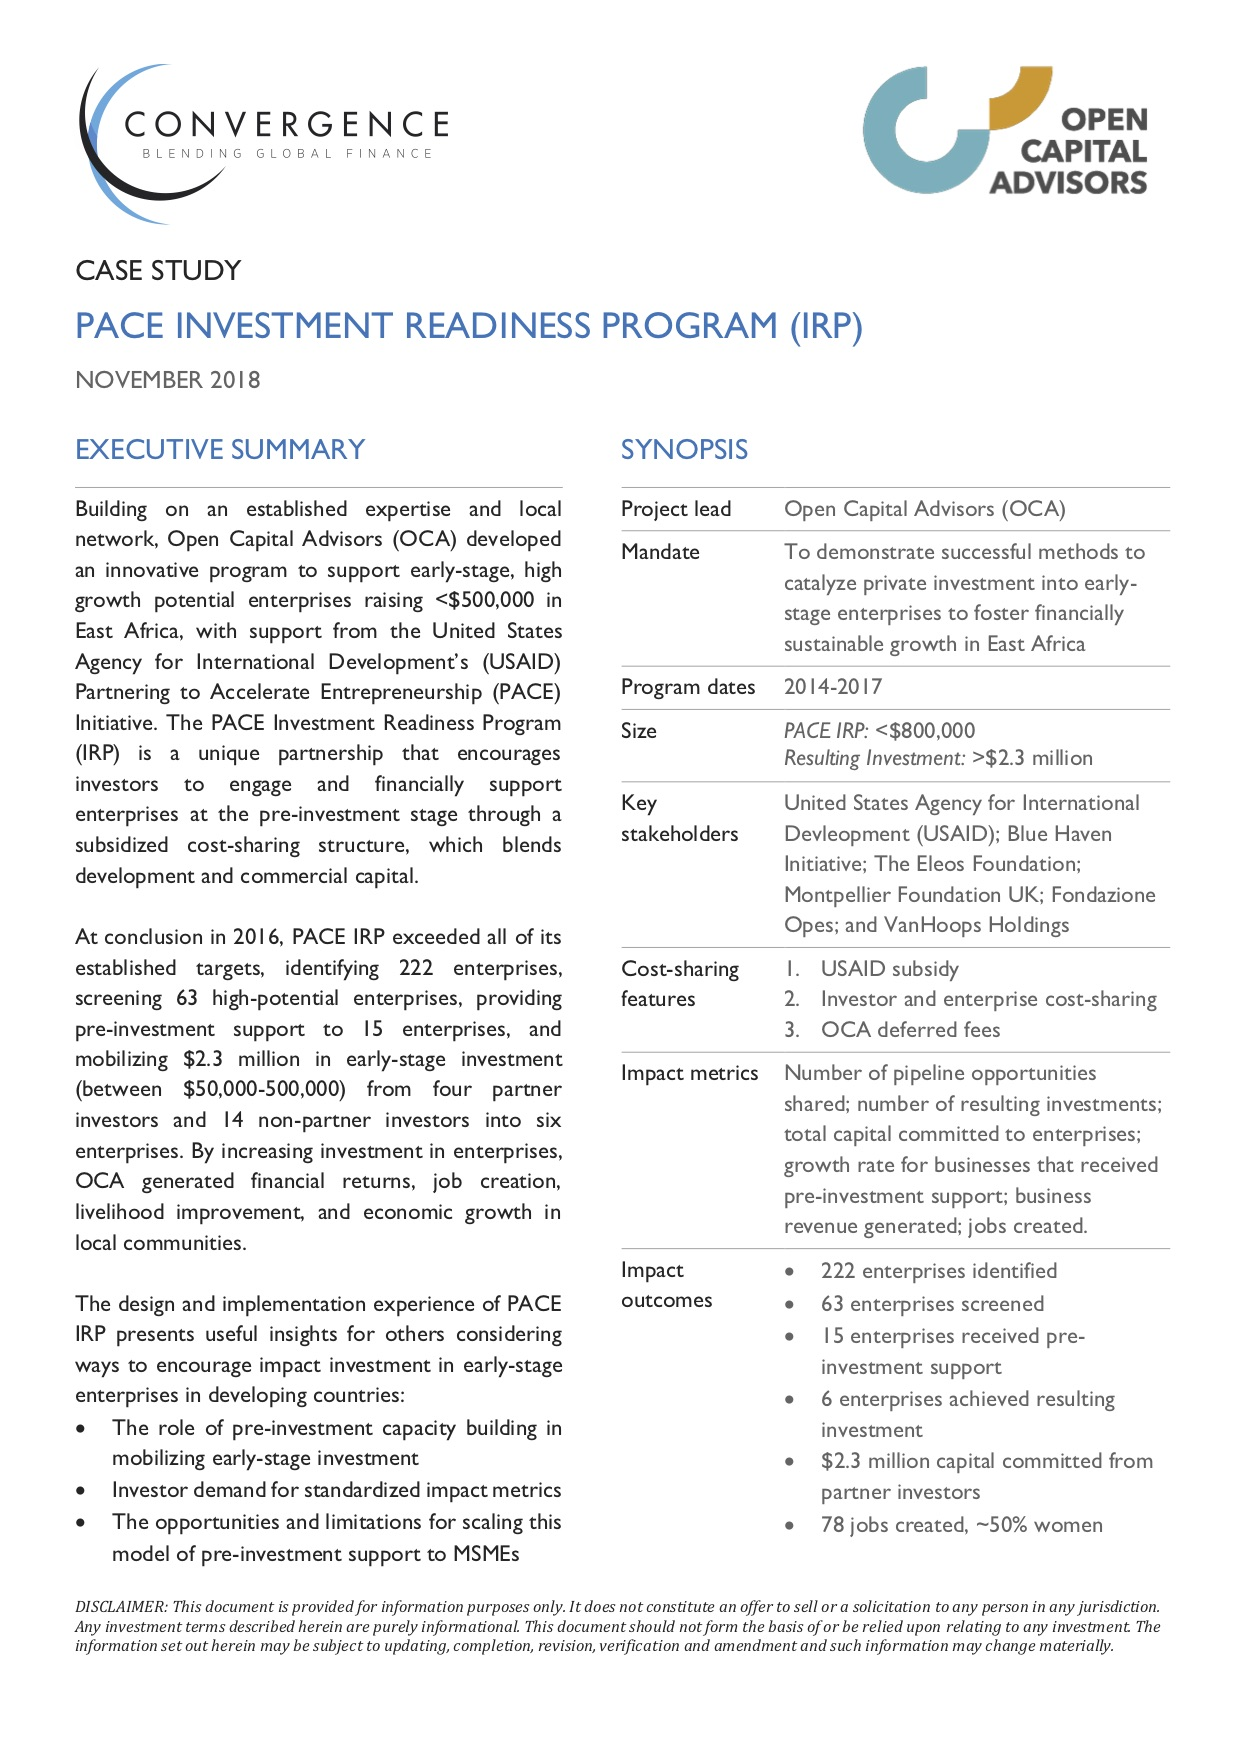 PACE Investment Readiness Program Case Study